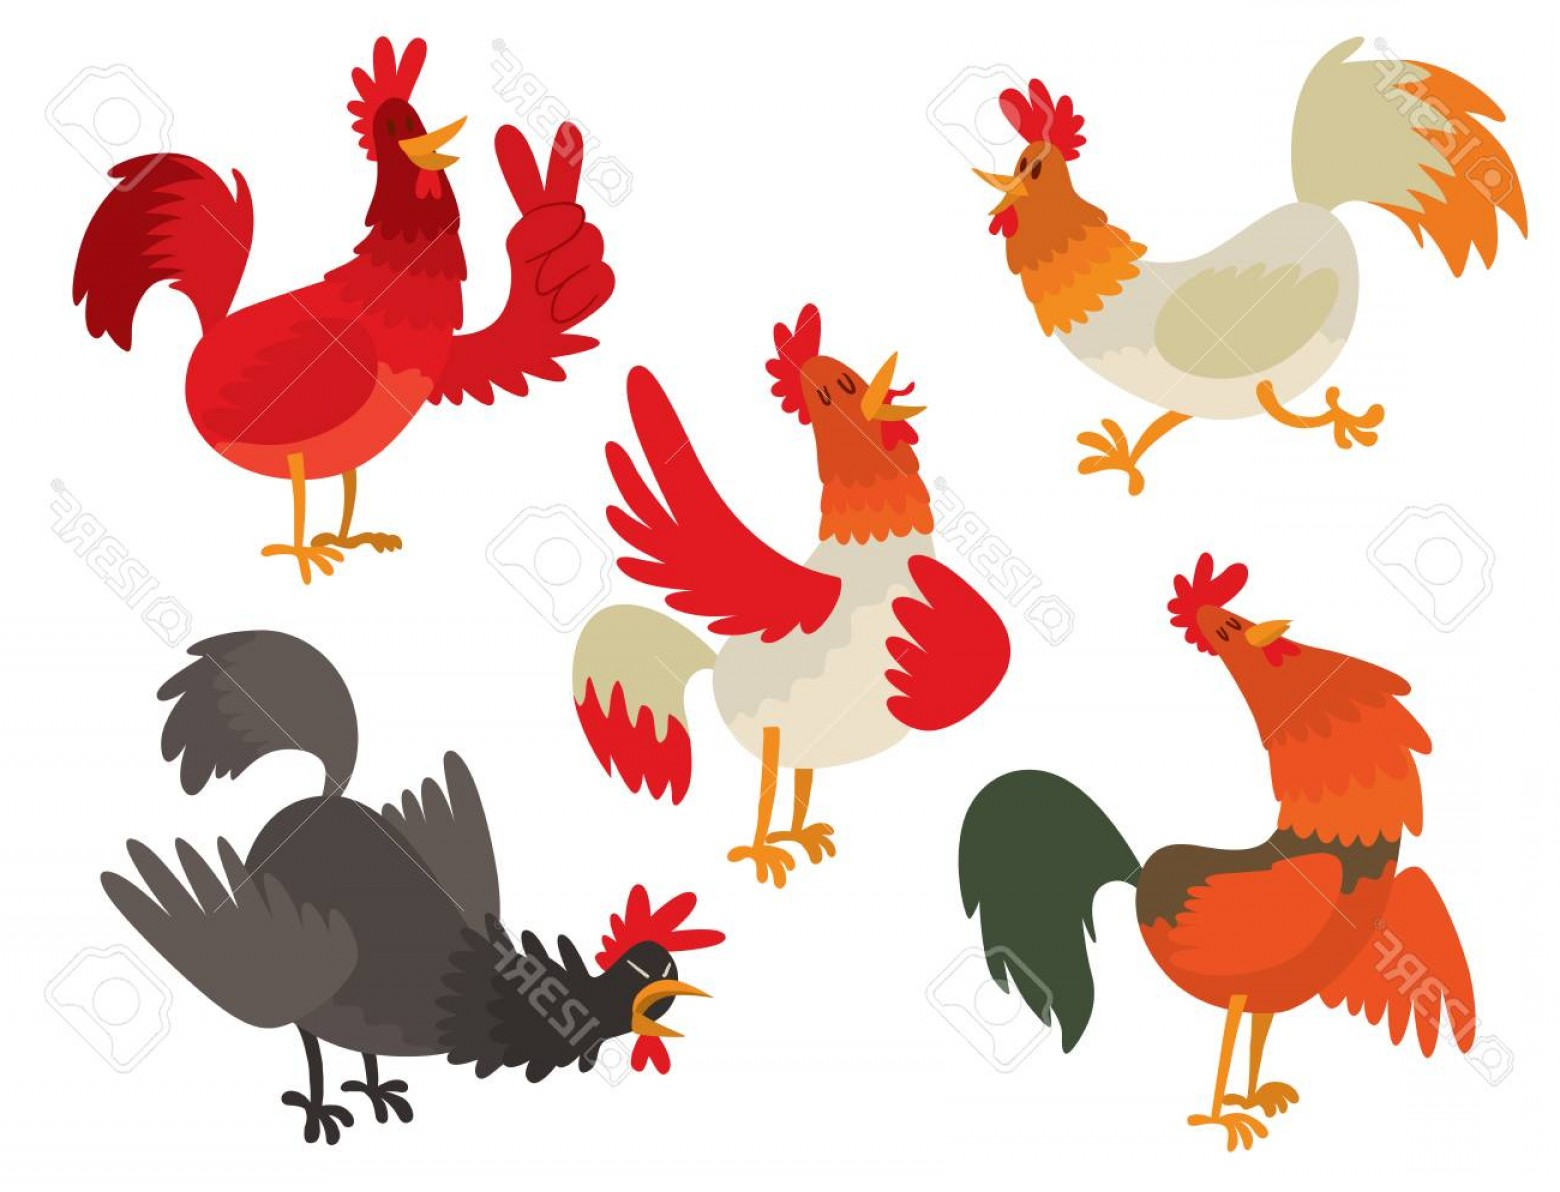 1560x1192 Vector Drawings Of Chicken Soidergi